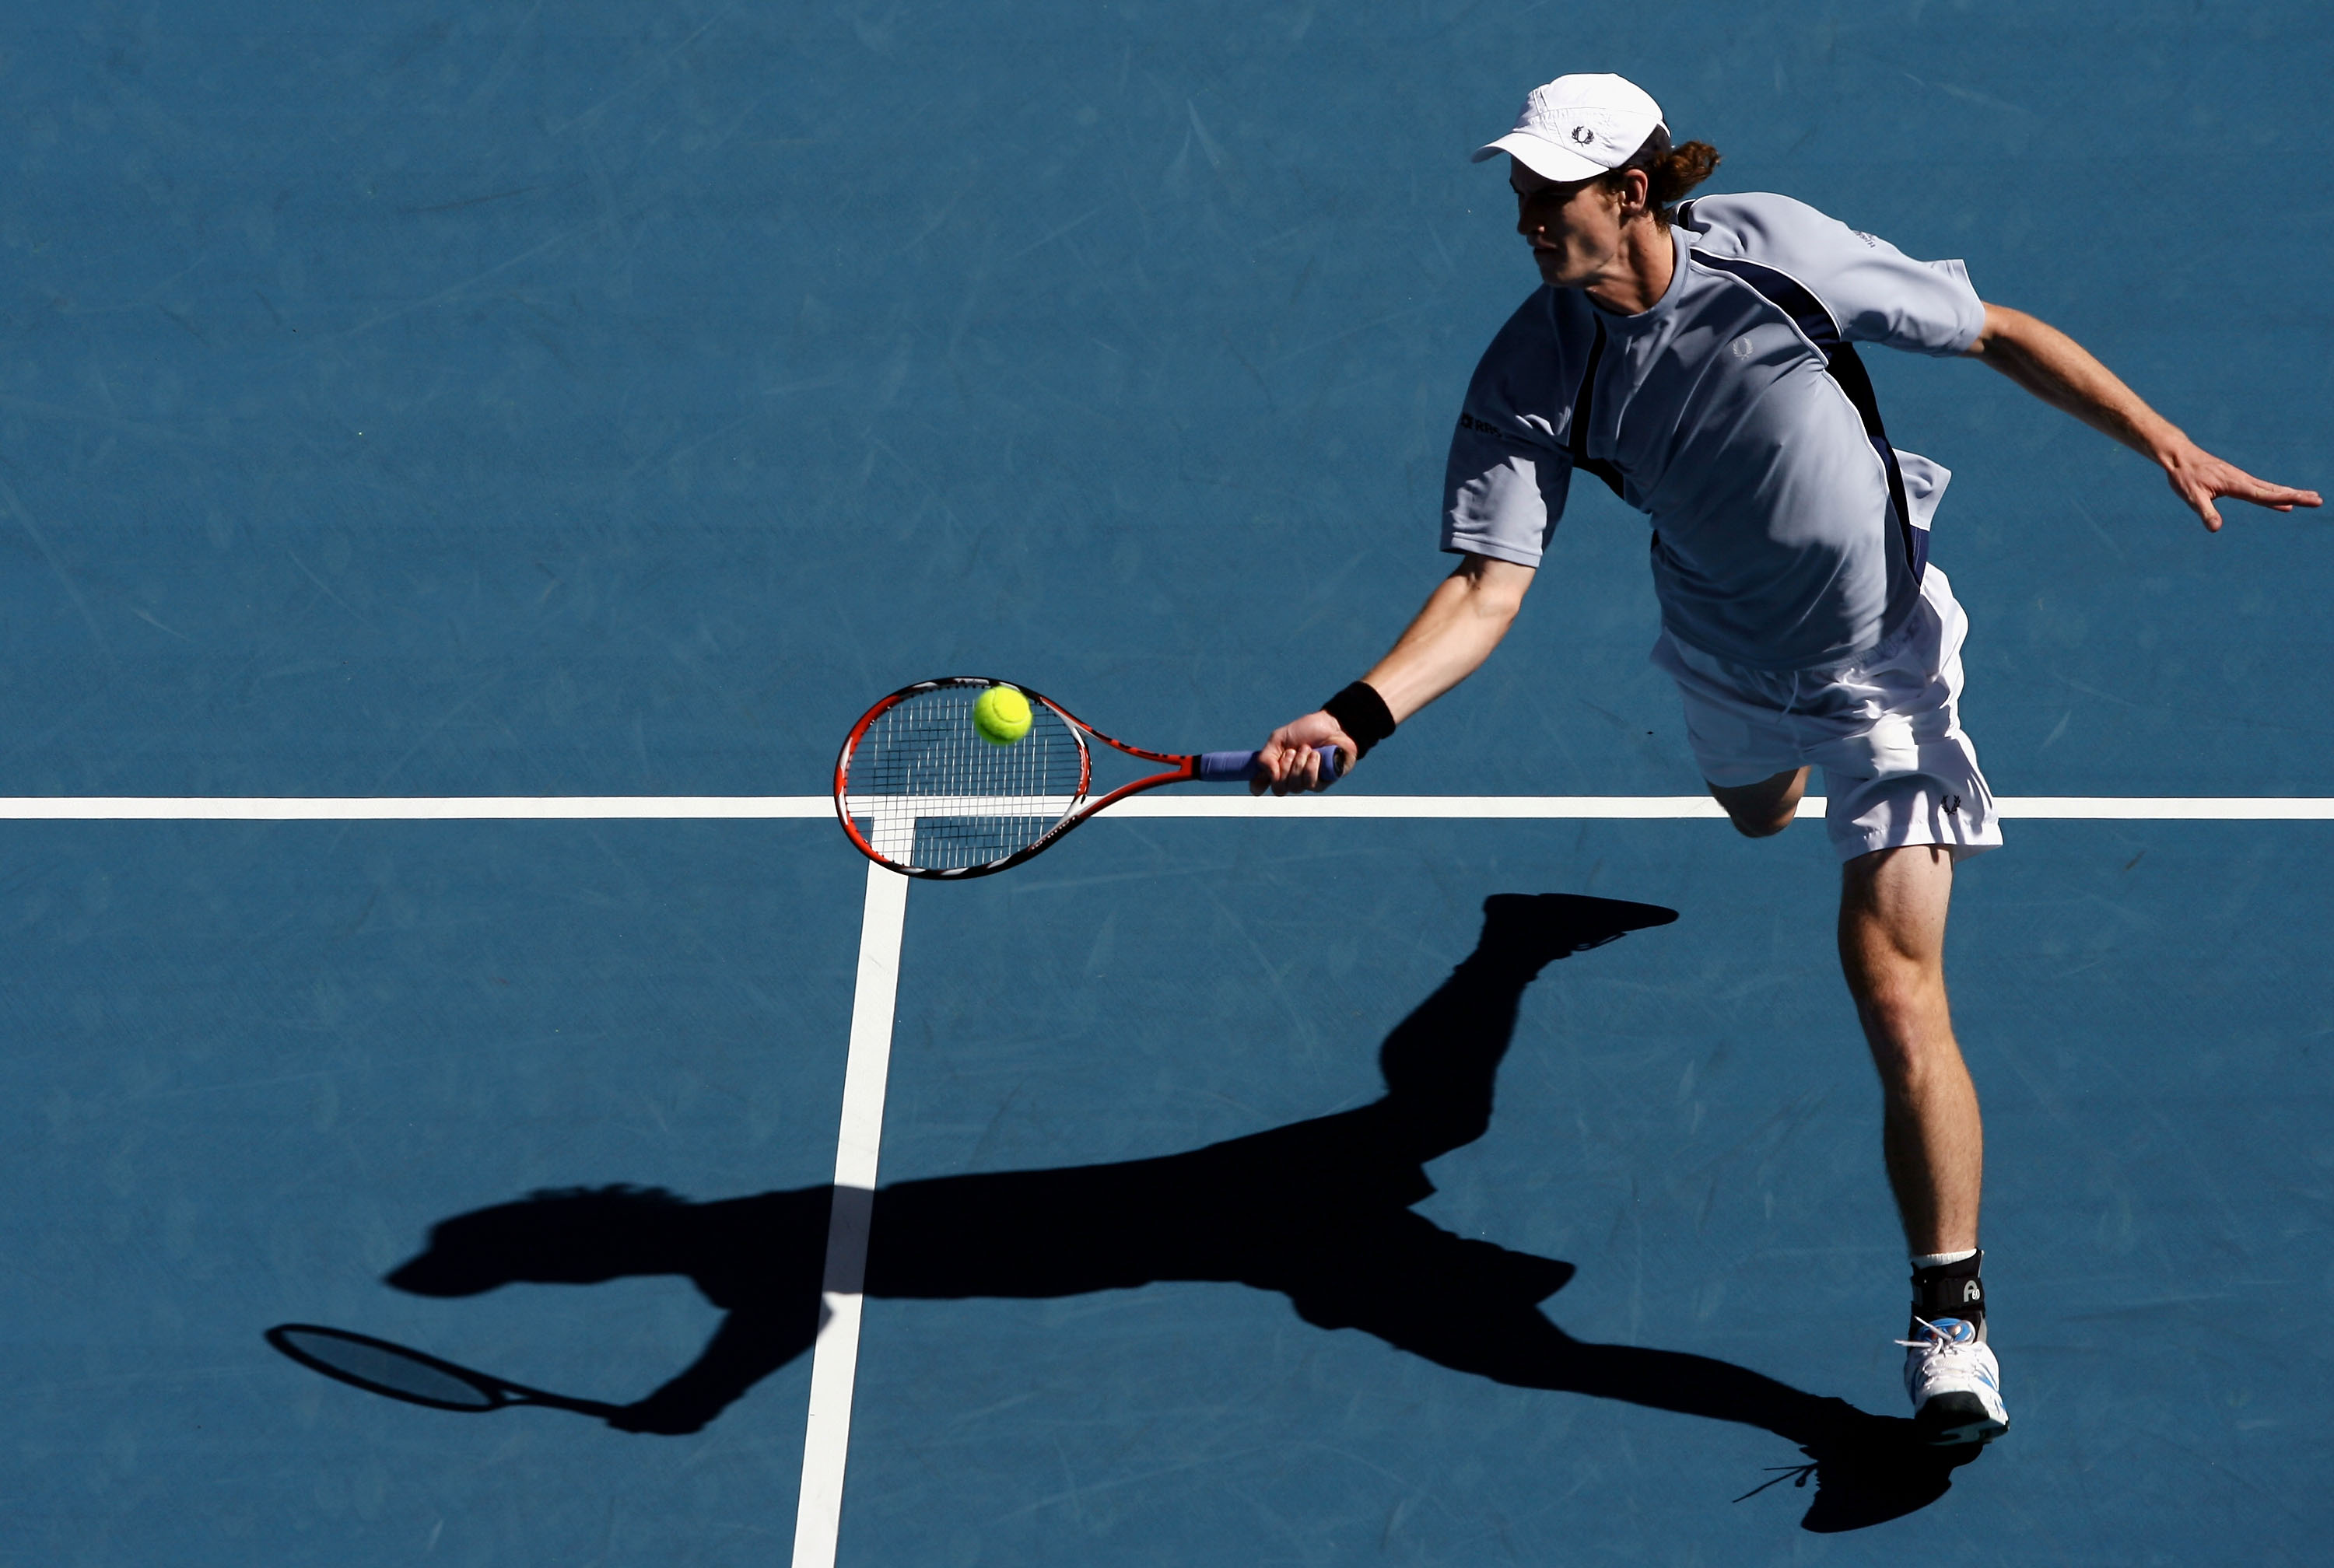 In drab grey, Murray lost to Jo-Wilfried Tsonga in the first round of the Australian Open.